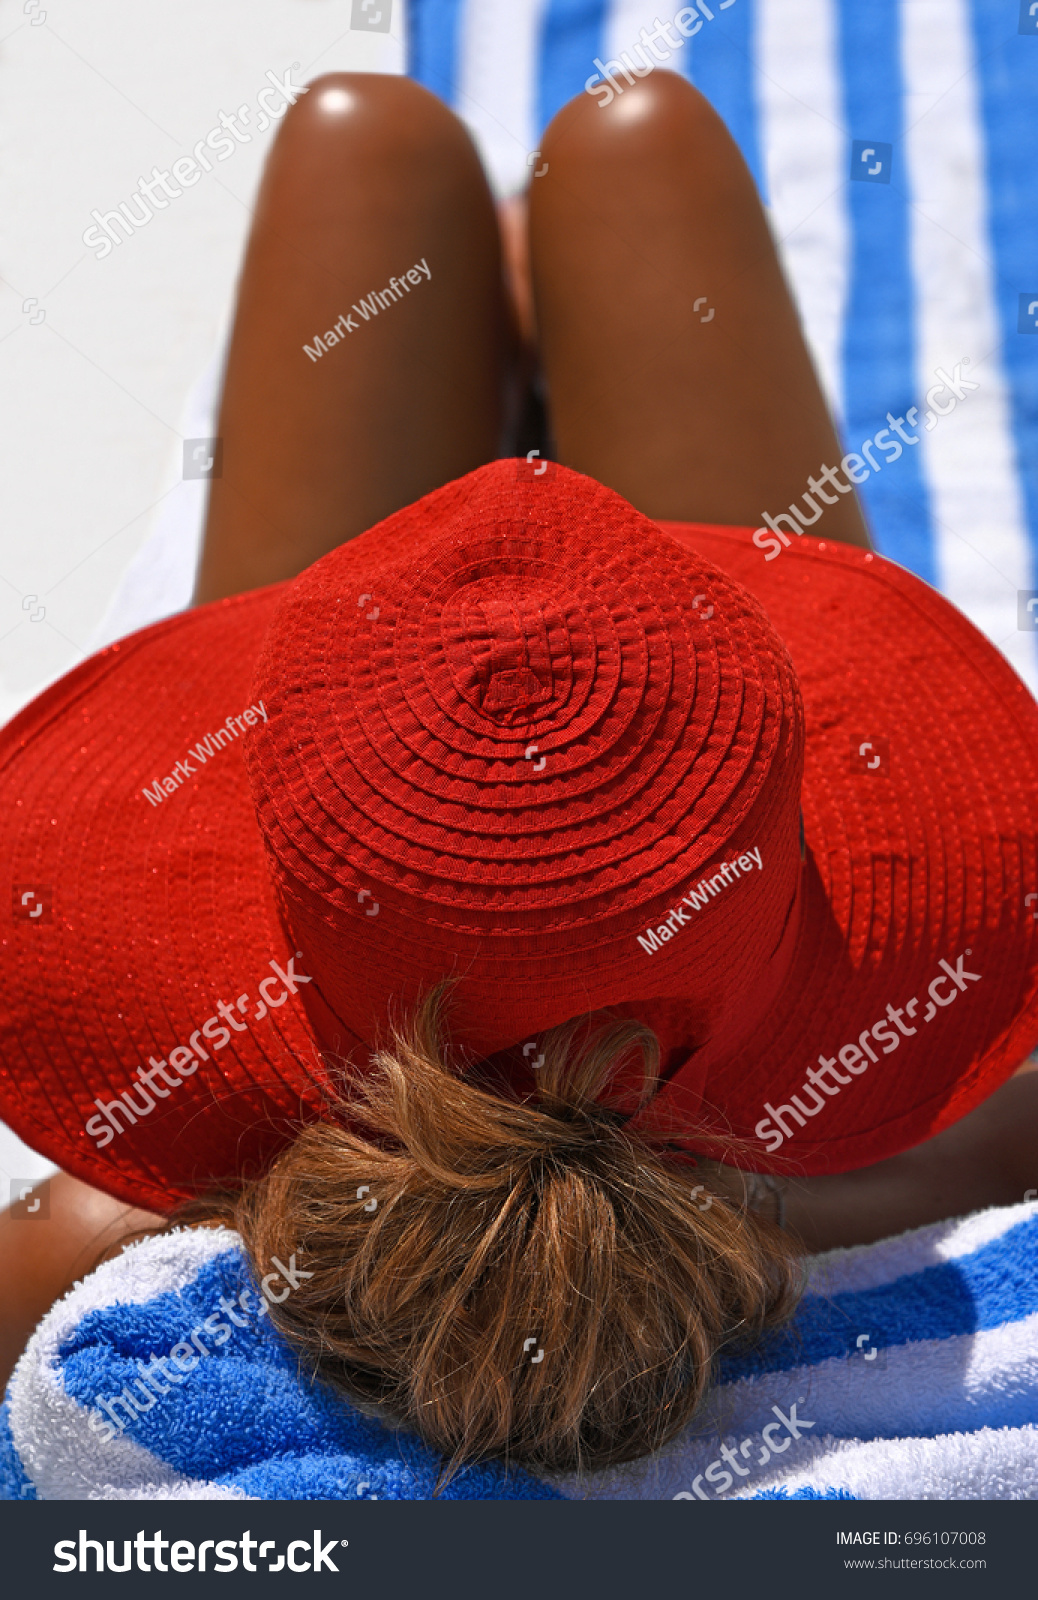 stock-photo-attractive-woman-wearing-a-r